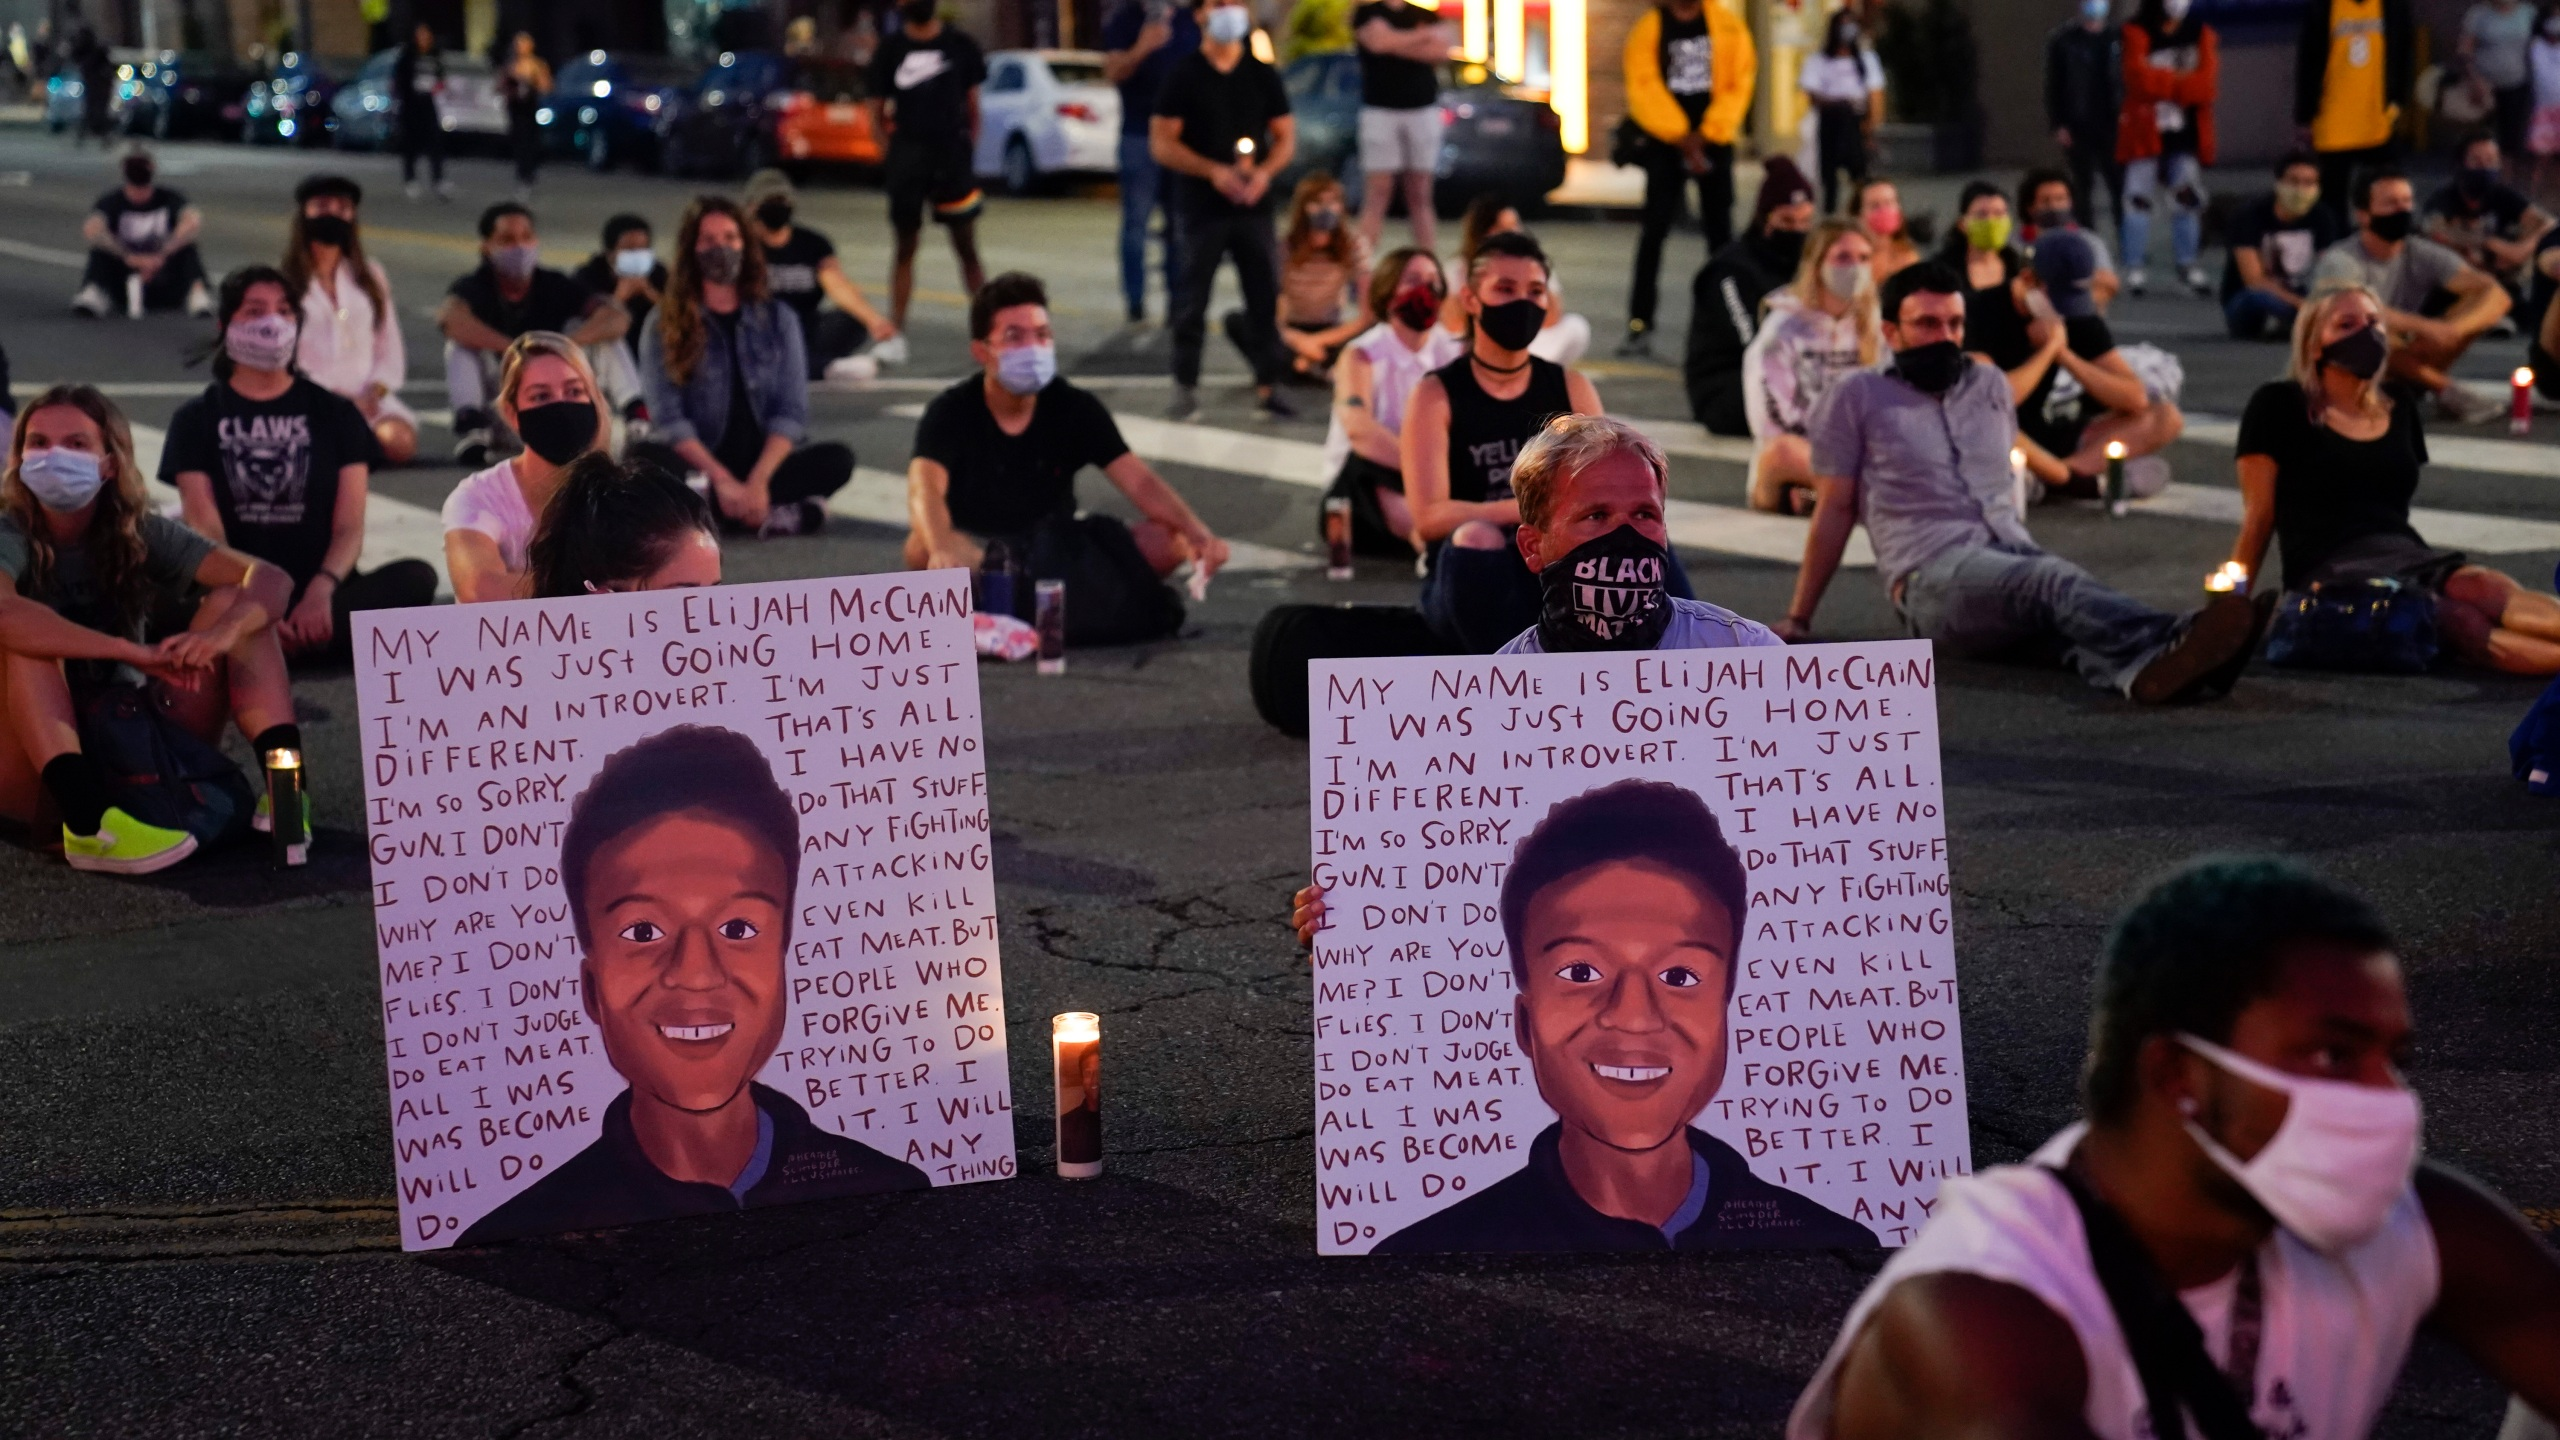 In this Aug. 24, 2020, file photo, two people hold posters showing images depicting Elijah McClain during a candlelight vigil for McClain outside the Laugh Factory in Los Angeles. (Jae C. Hong/Associated Press)